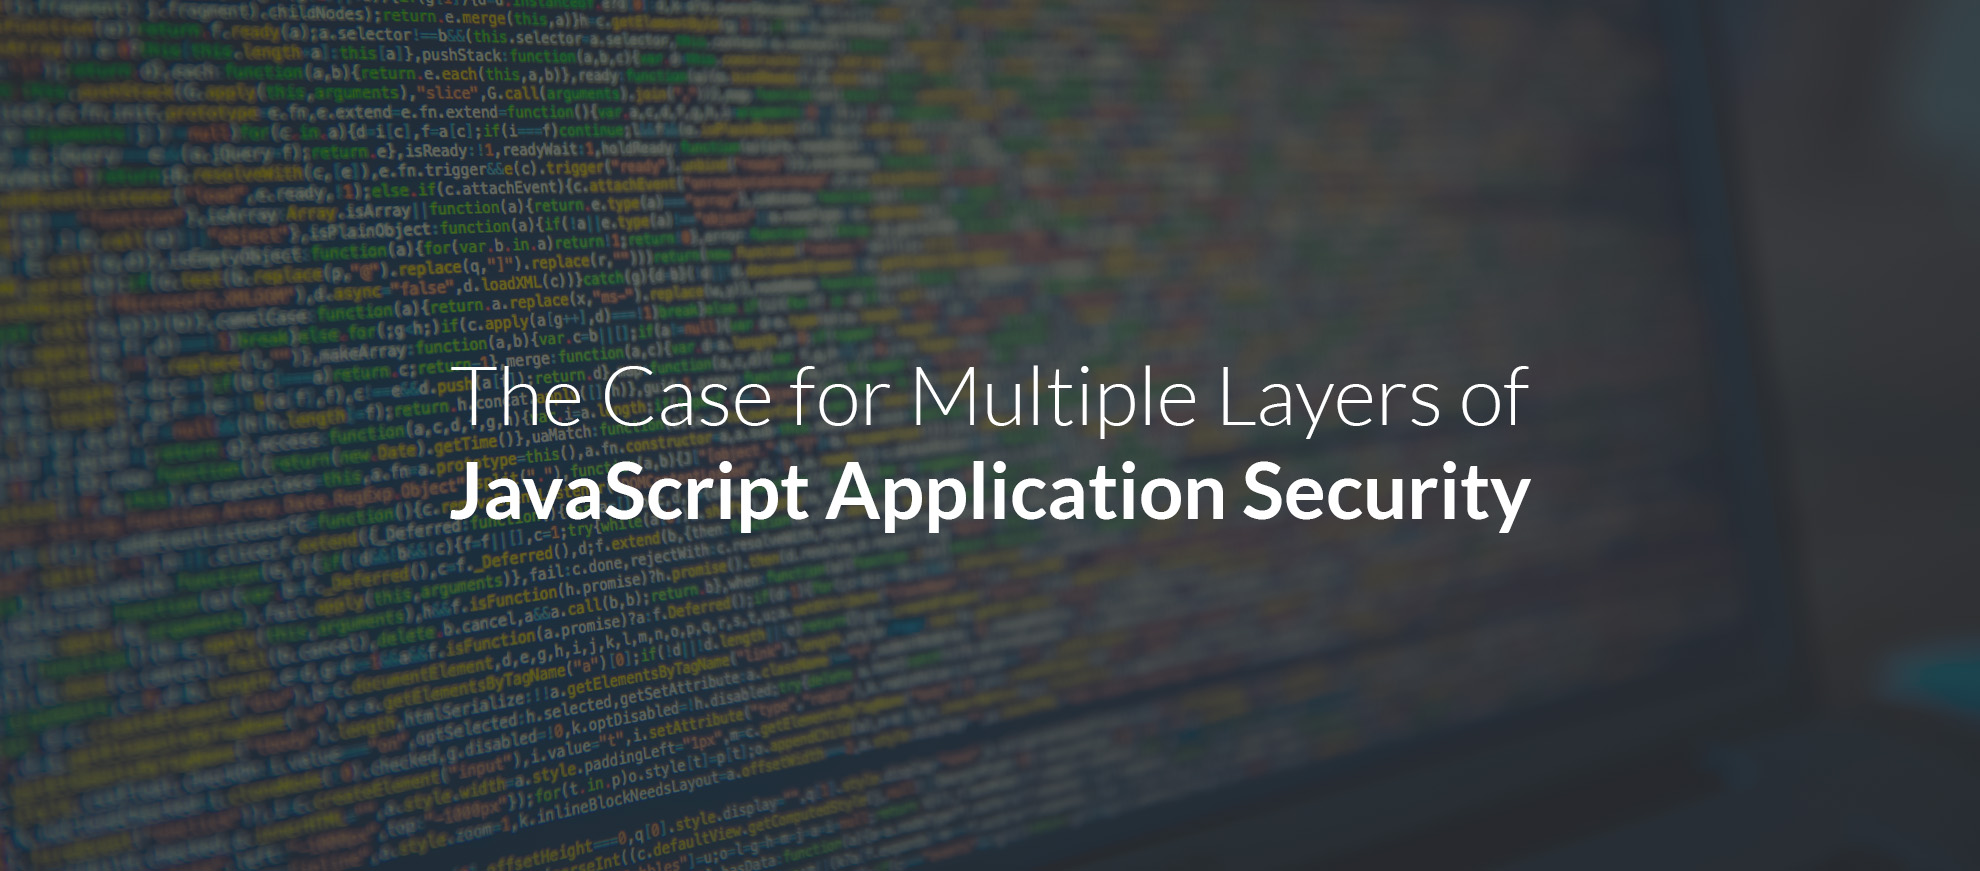 The Case for Multiple Layers of JavaScript Application Security